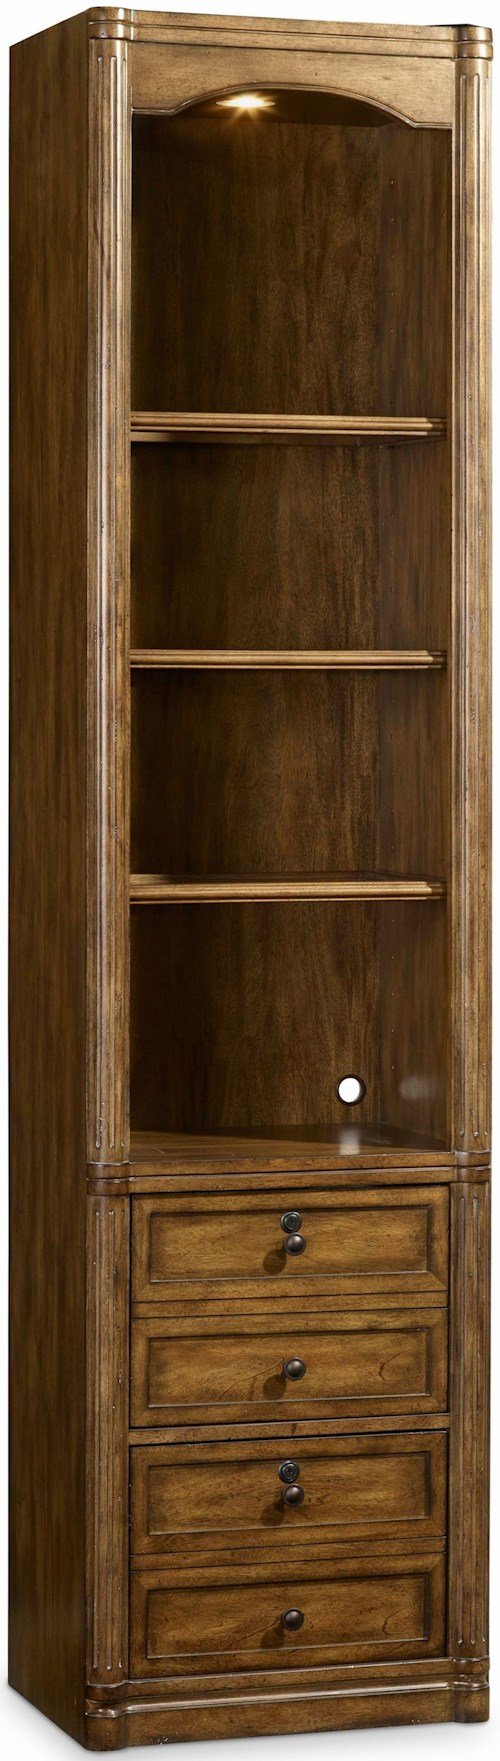 Hooker Furniture Saint Armand Wall Storage Cabinet with Locking File Drawers